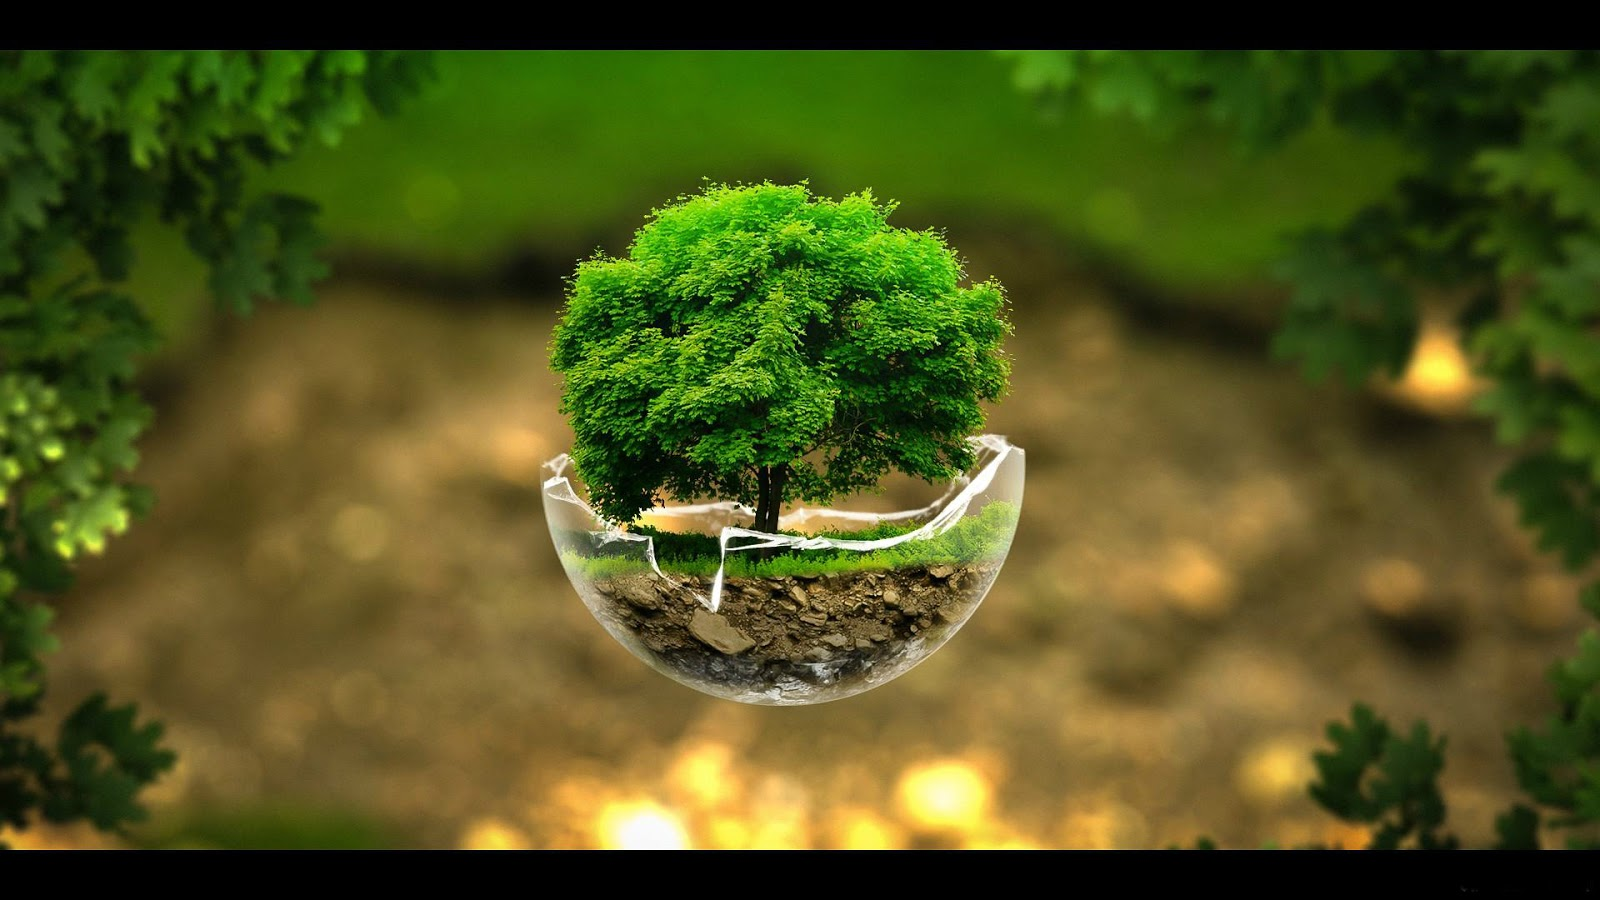 Inspirational Happy Earth Day Images